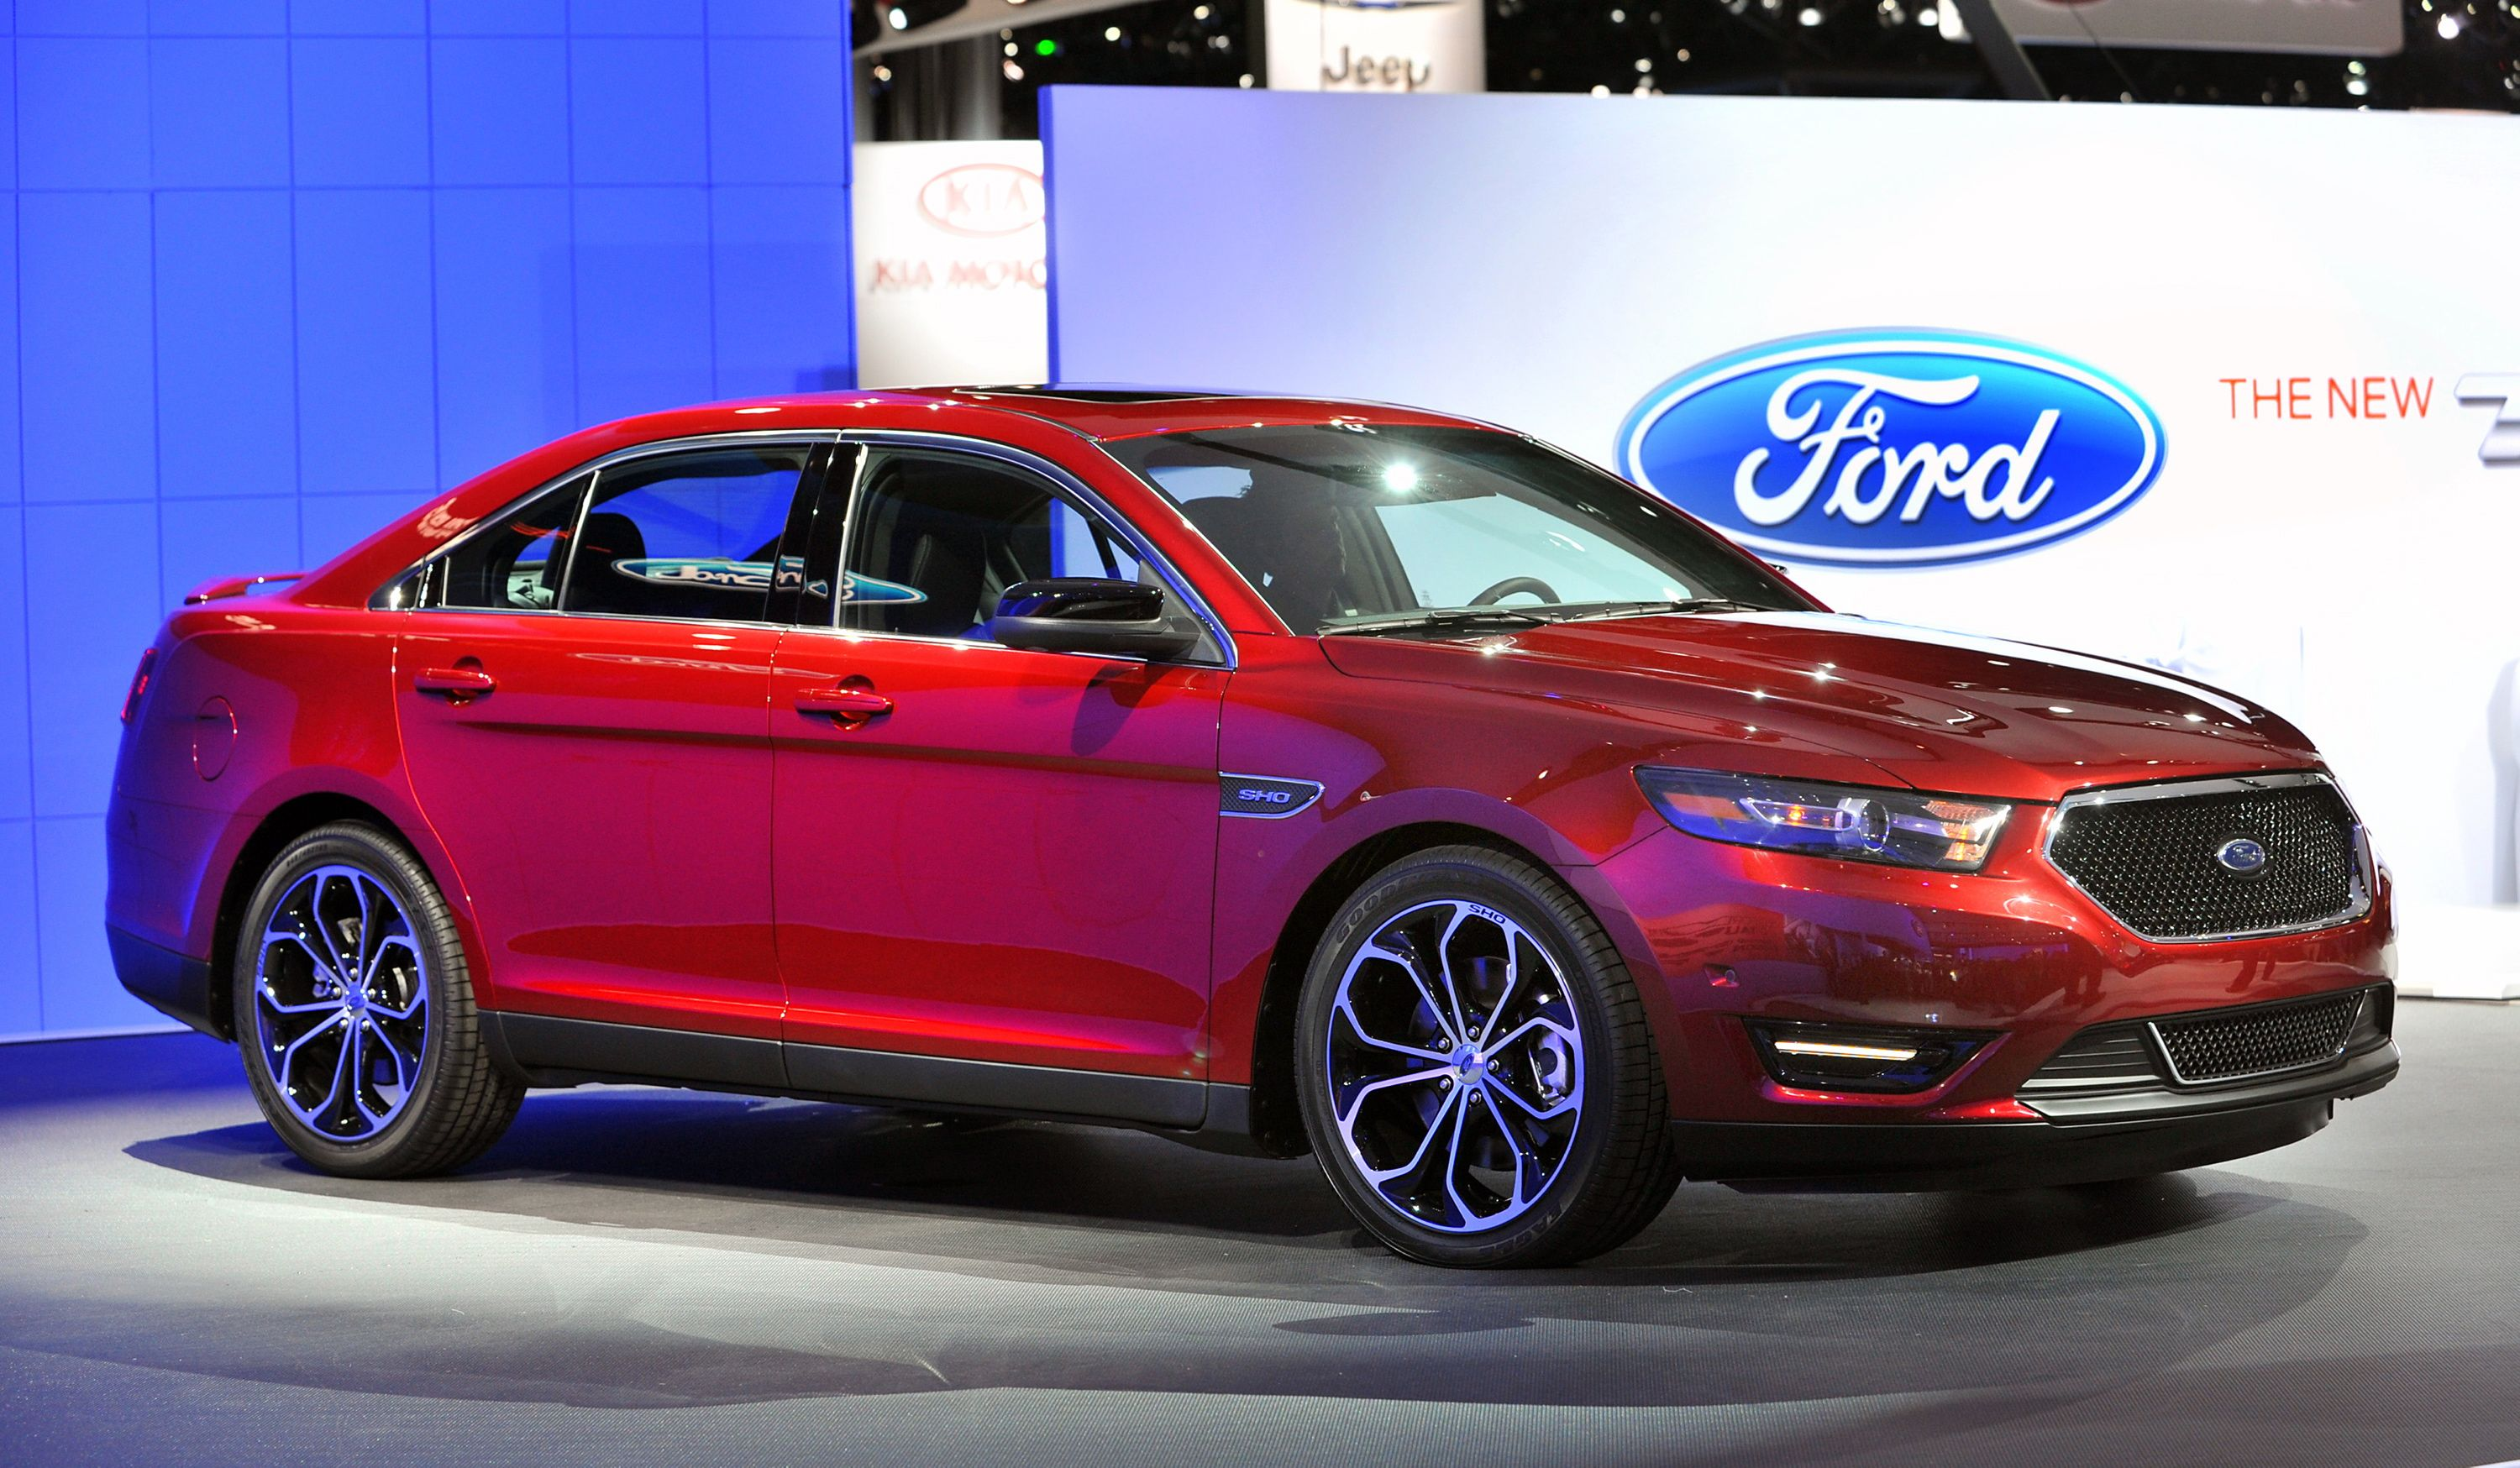 2013 Taurus Sho With Images Jeep New Car 2019 Ford Jeep